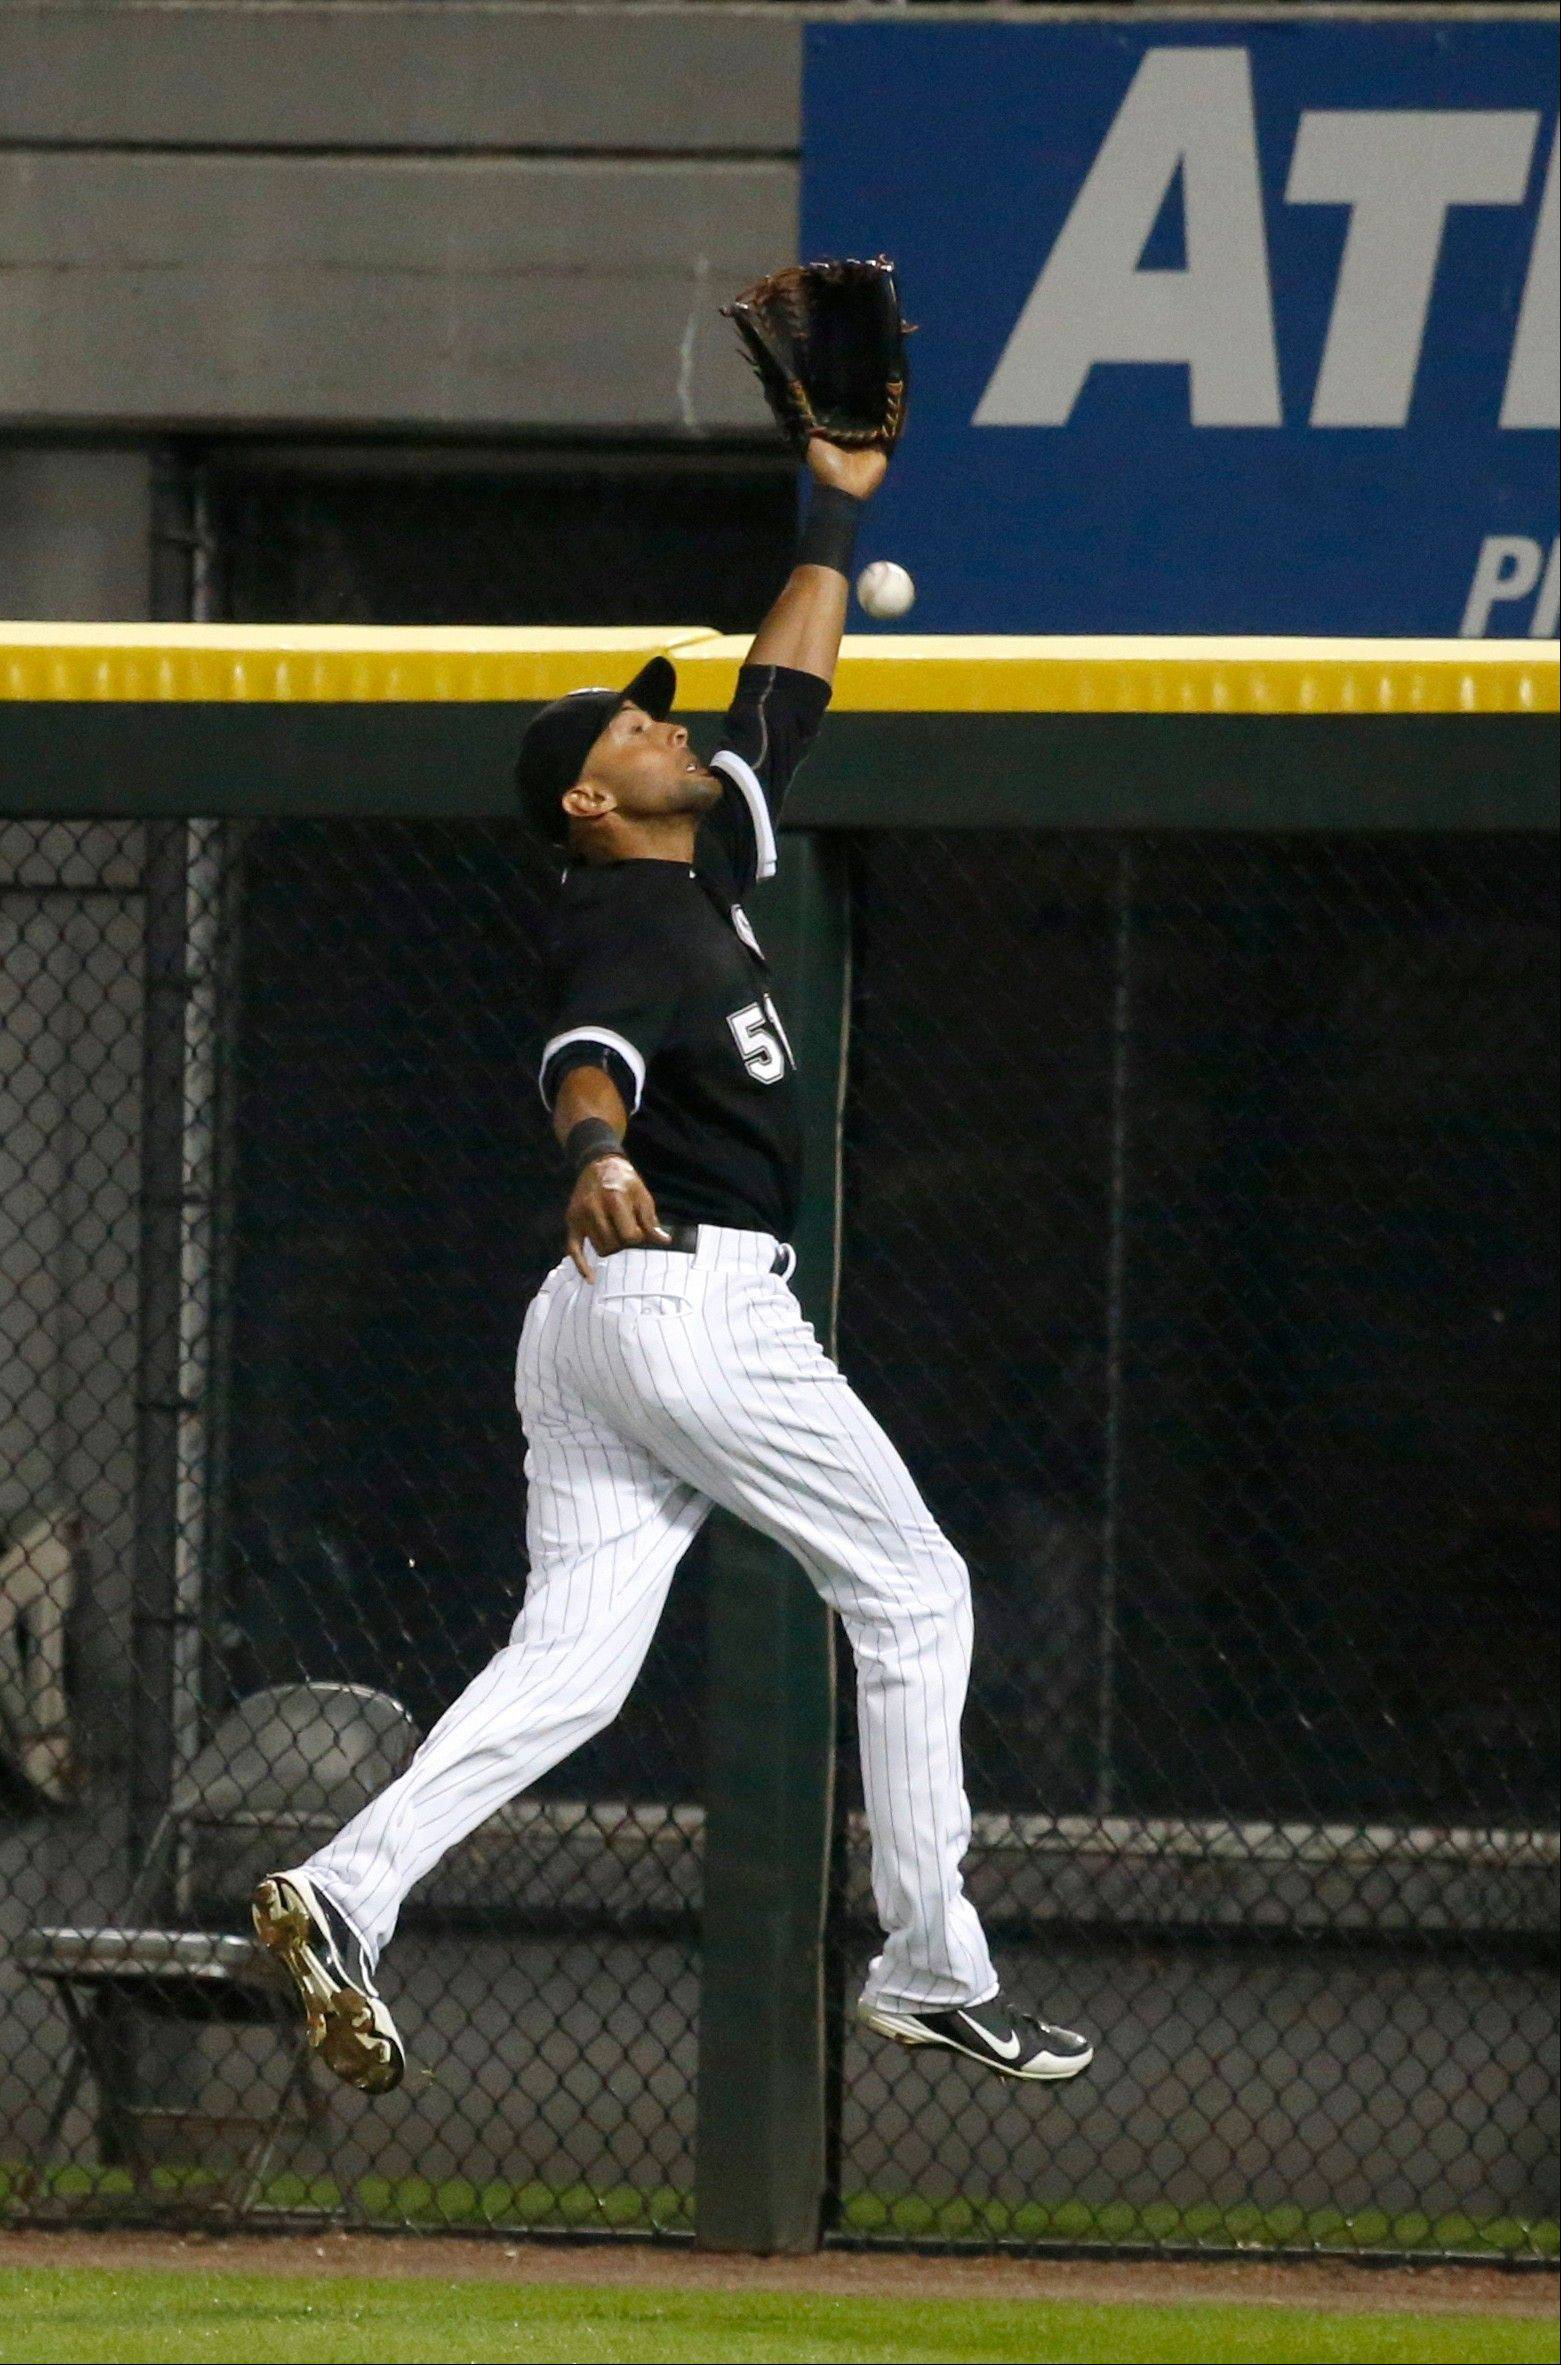 Chicago White Sox right fielder Alex Rios is unable to catch a long fly ball, scoring Salvador Perez, off the bat of Kansas City Royals� Mike Moustakas during the ninth inning of a baseball game on Friday, July 26, 2013, in Chicago. (AP Photo/Charles Rex Arbogast)